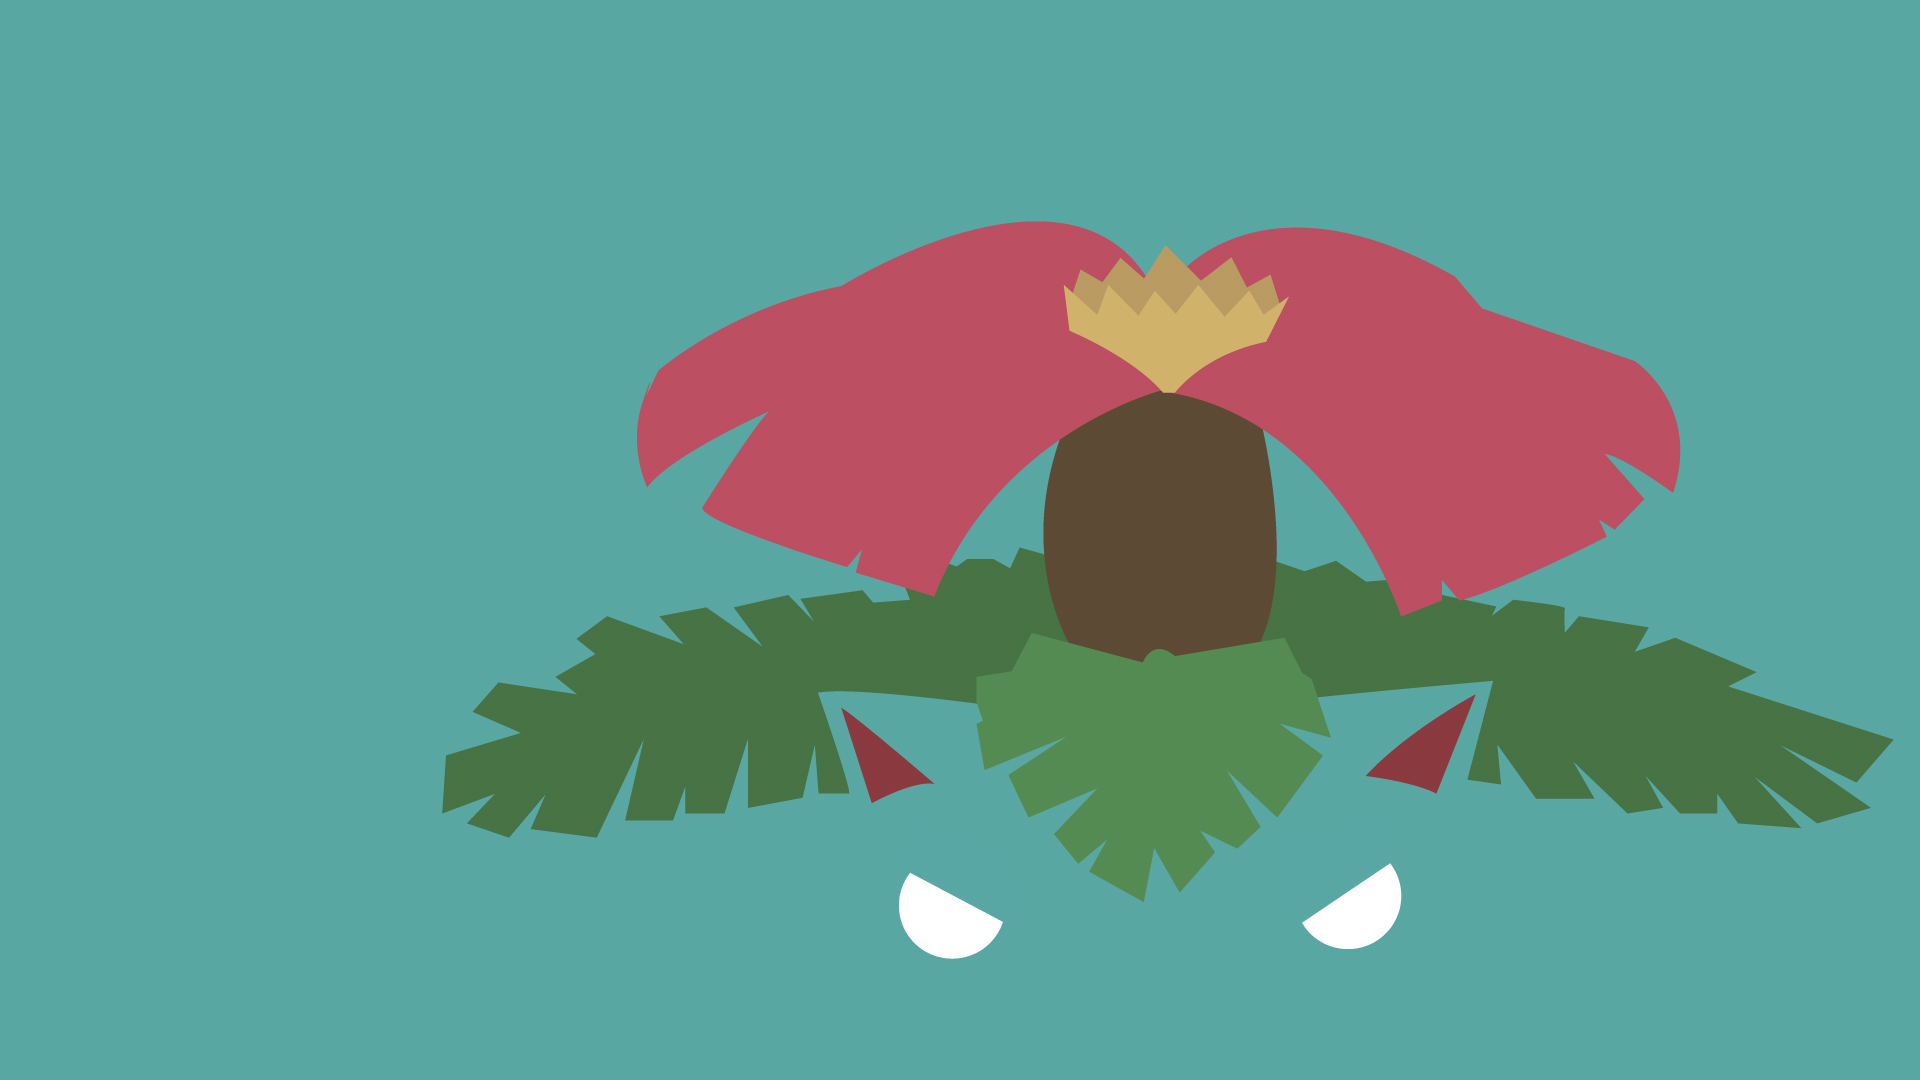 venusaur wallpaper 48068